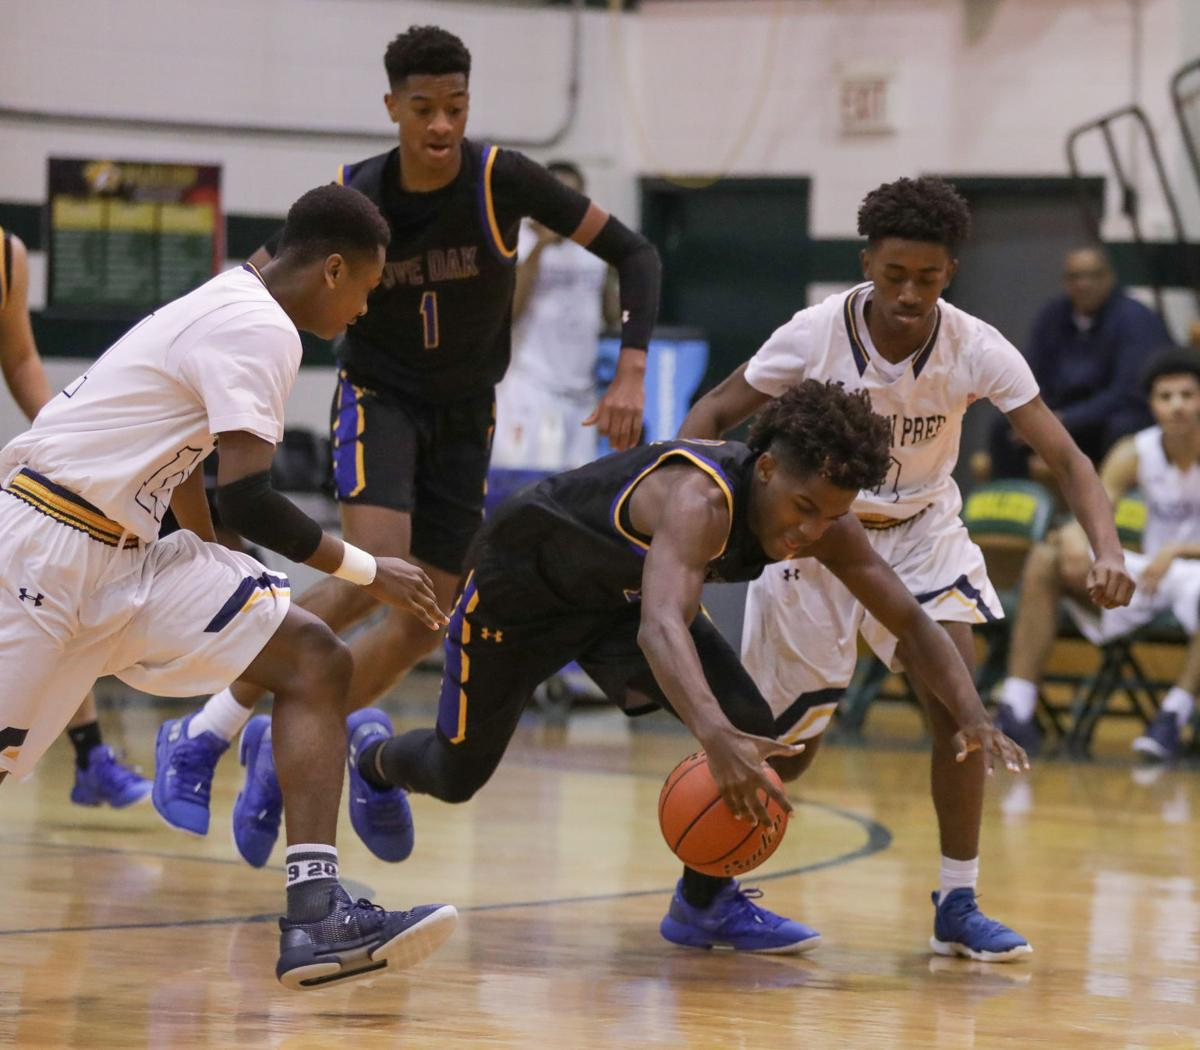 Madison Prep vs Live oak boys basketball Ahmad Pink